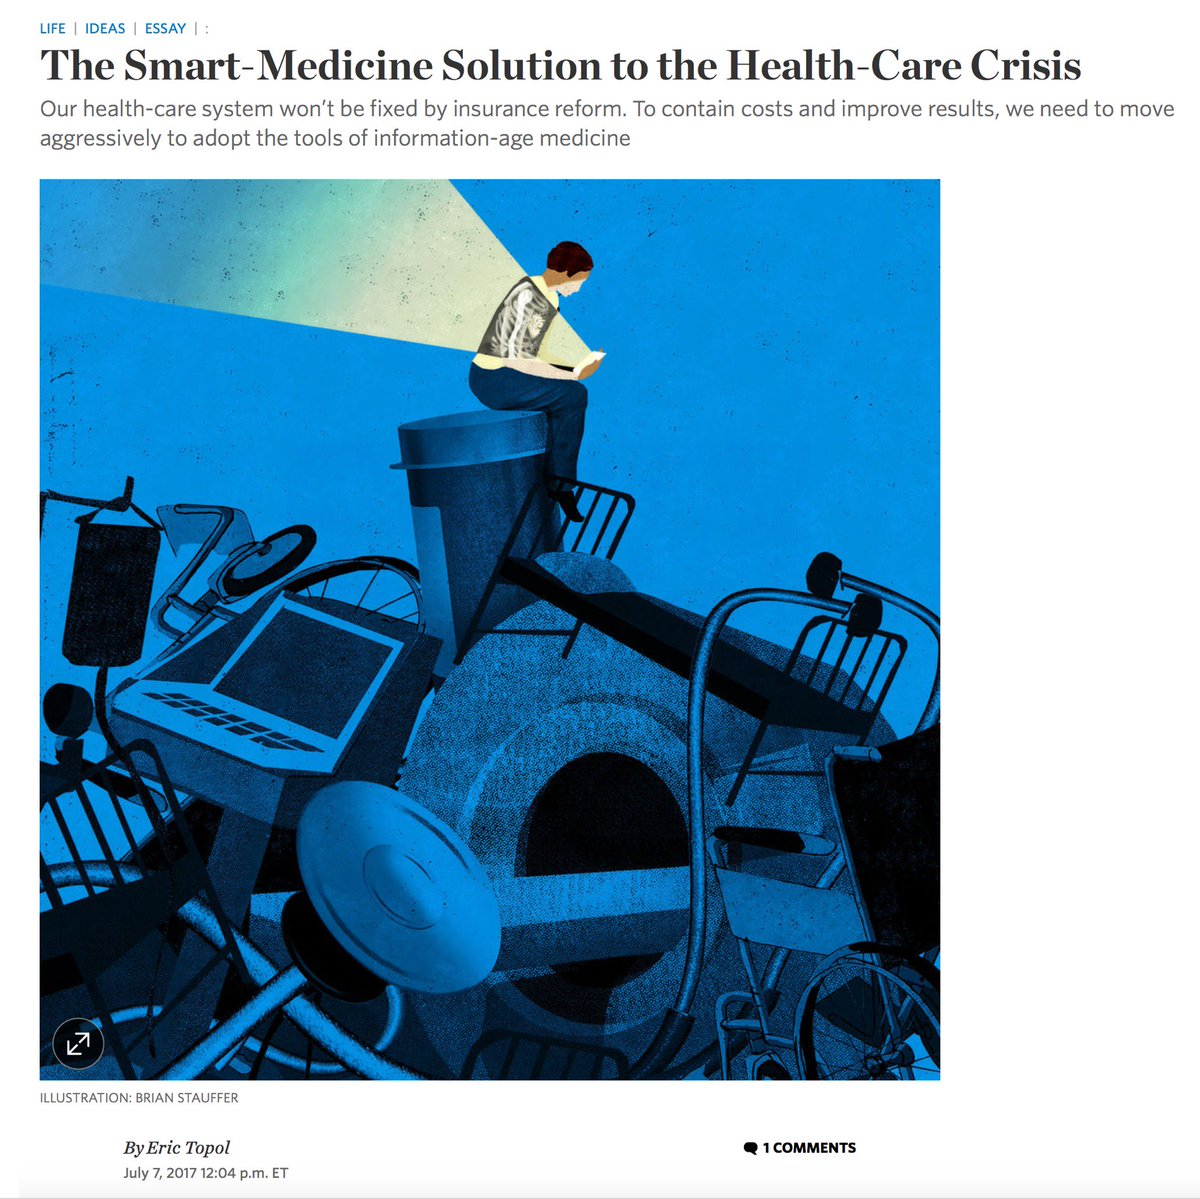 eric topol on twitter the smart medicine solution to the